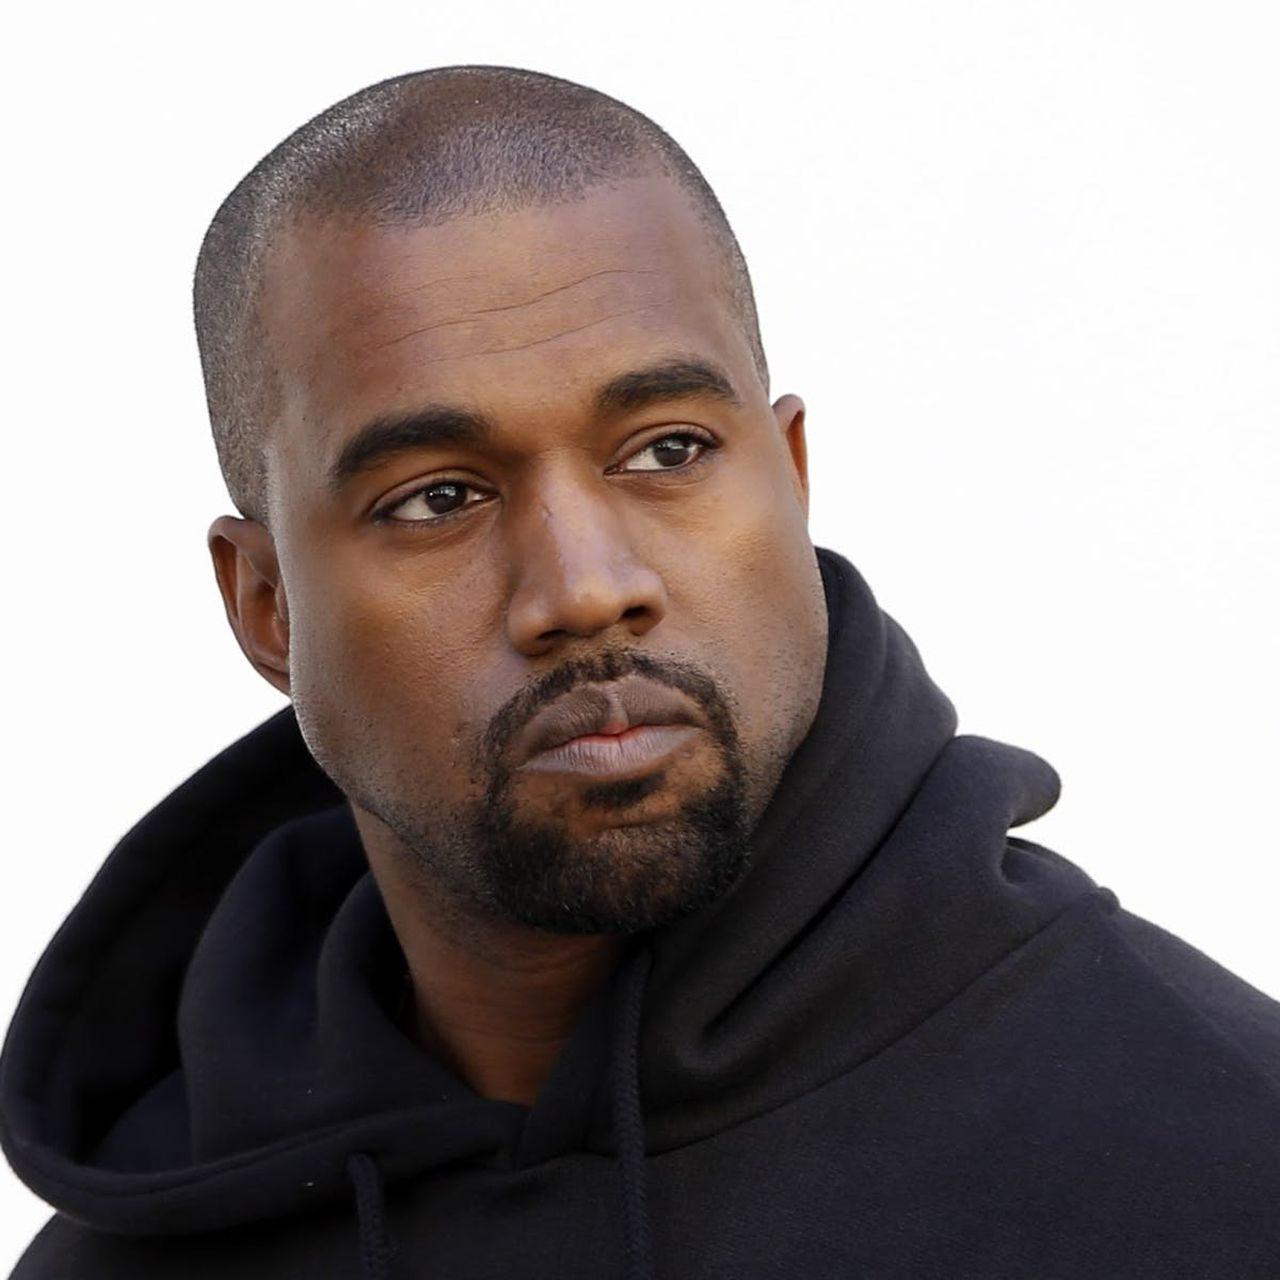 Kanye West drops his presidential bid